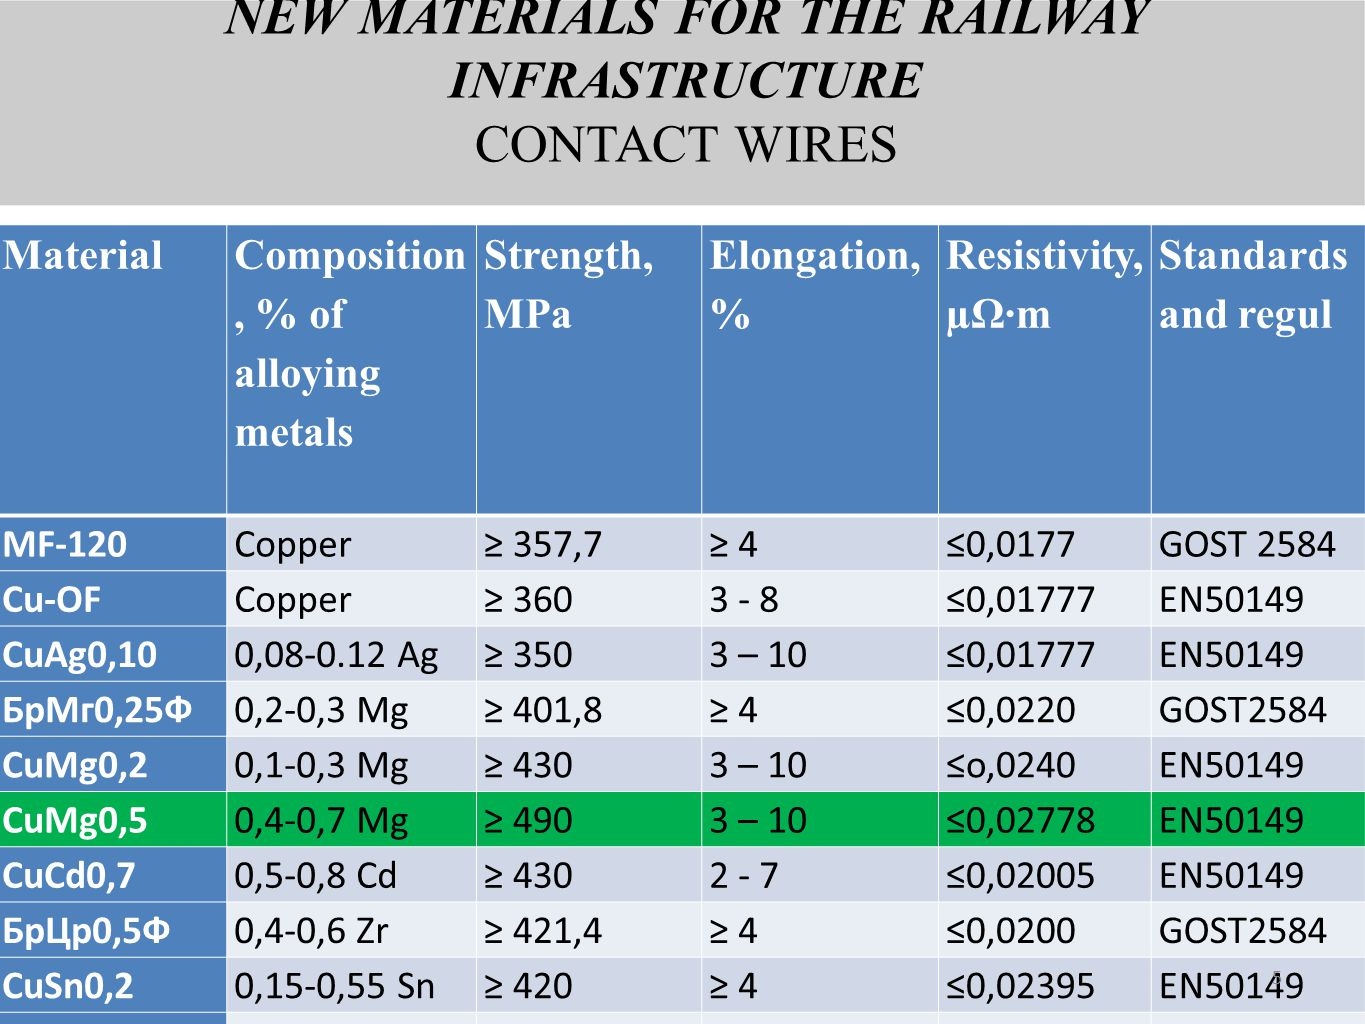 NEW MATERIALS FOR THE RAILWAY INFRASTRUCTURE CONTACT WIRES MaterialComposition, % of alloying metals Strength, MPa Elongation, % Resistivity, µΩ·m Standards and regul МF-120Copper≥ 357,7≥ 4≤0,0177GOST 2584 Cu-OFCopper≥ 3603 - 8≤0,01777EN50149 CuAg0,100,08-0.12 Ag≥ 3503 – 10≤0,01777EN50149 БрМг0,25Ф0,2-0,3 Mg≥ 401,8≥ 4≤0,0220GOST2584 CuMg0,20,1-0,3 Mg≥ 4303 – 10≤o,0240EN50149 CuMg0,50,4-0,7 Mg≥ 4903 – 10≤0,02778EN50149 CuCd0,70,5-0,8 Cd≥ 4302 - 7≤0,02005EN50149 БрЦр0,5Ф0,4-0,6 Zr≥ 421,4≥ 4≤0,0200GOST2584 CuSn0,20,15-0,55 Sn≥ 420≥ 4≤0,02395EN50149 Бр0,15Ф0,12-0,2 Sn≥ 411,62 - 8≤0,0210 5